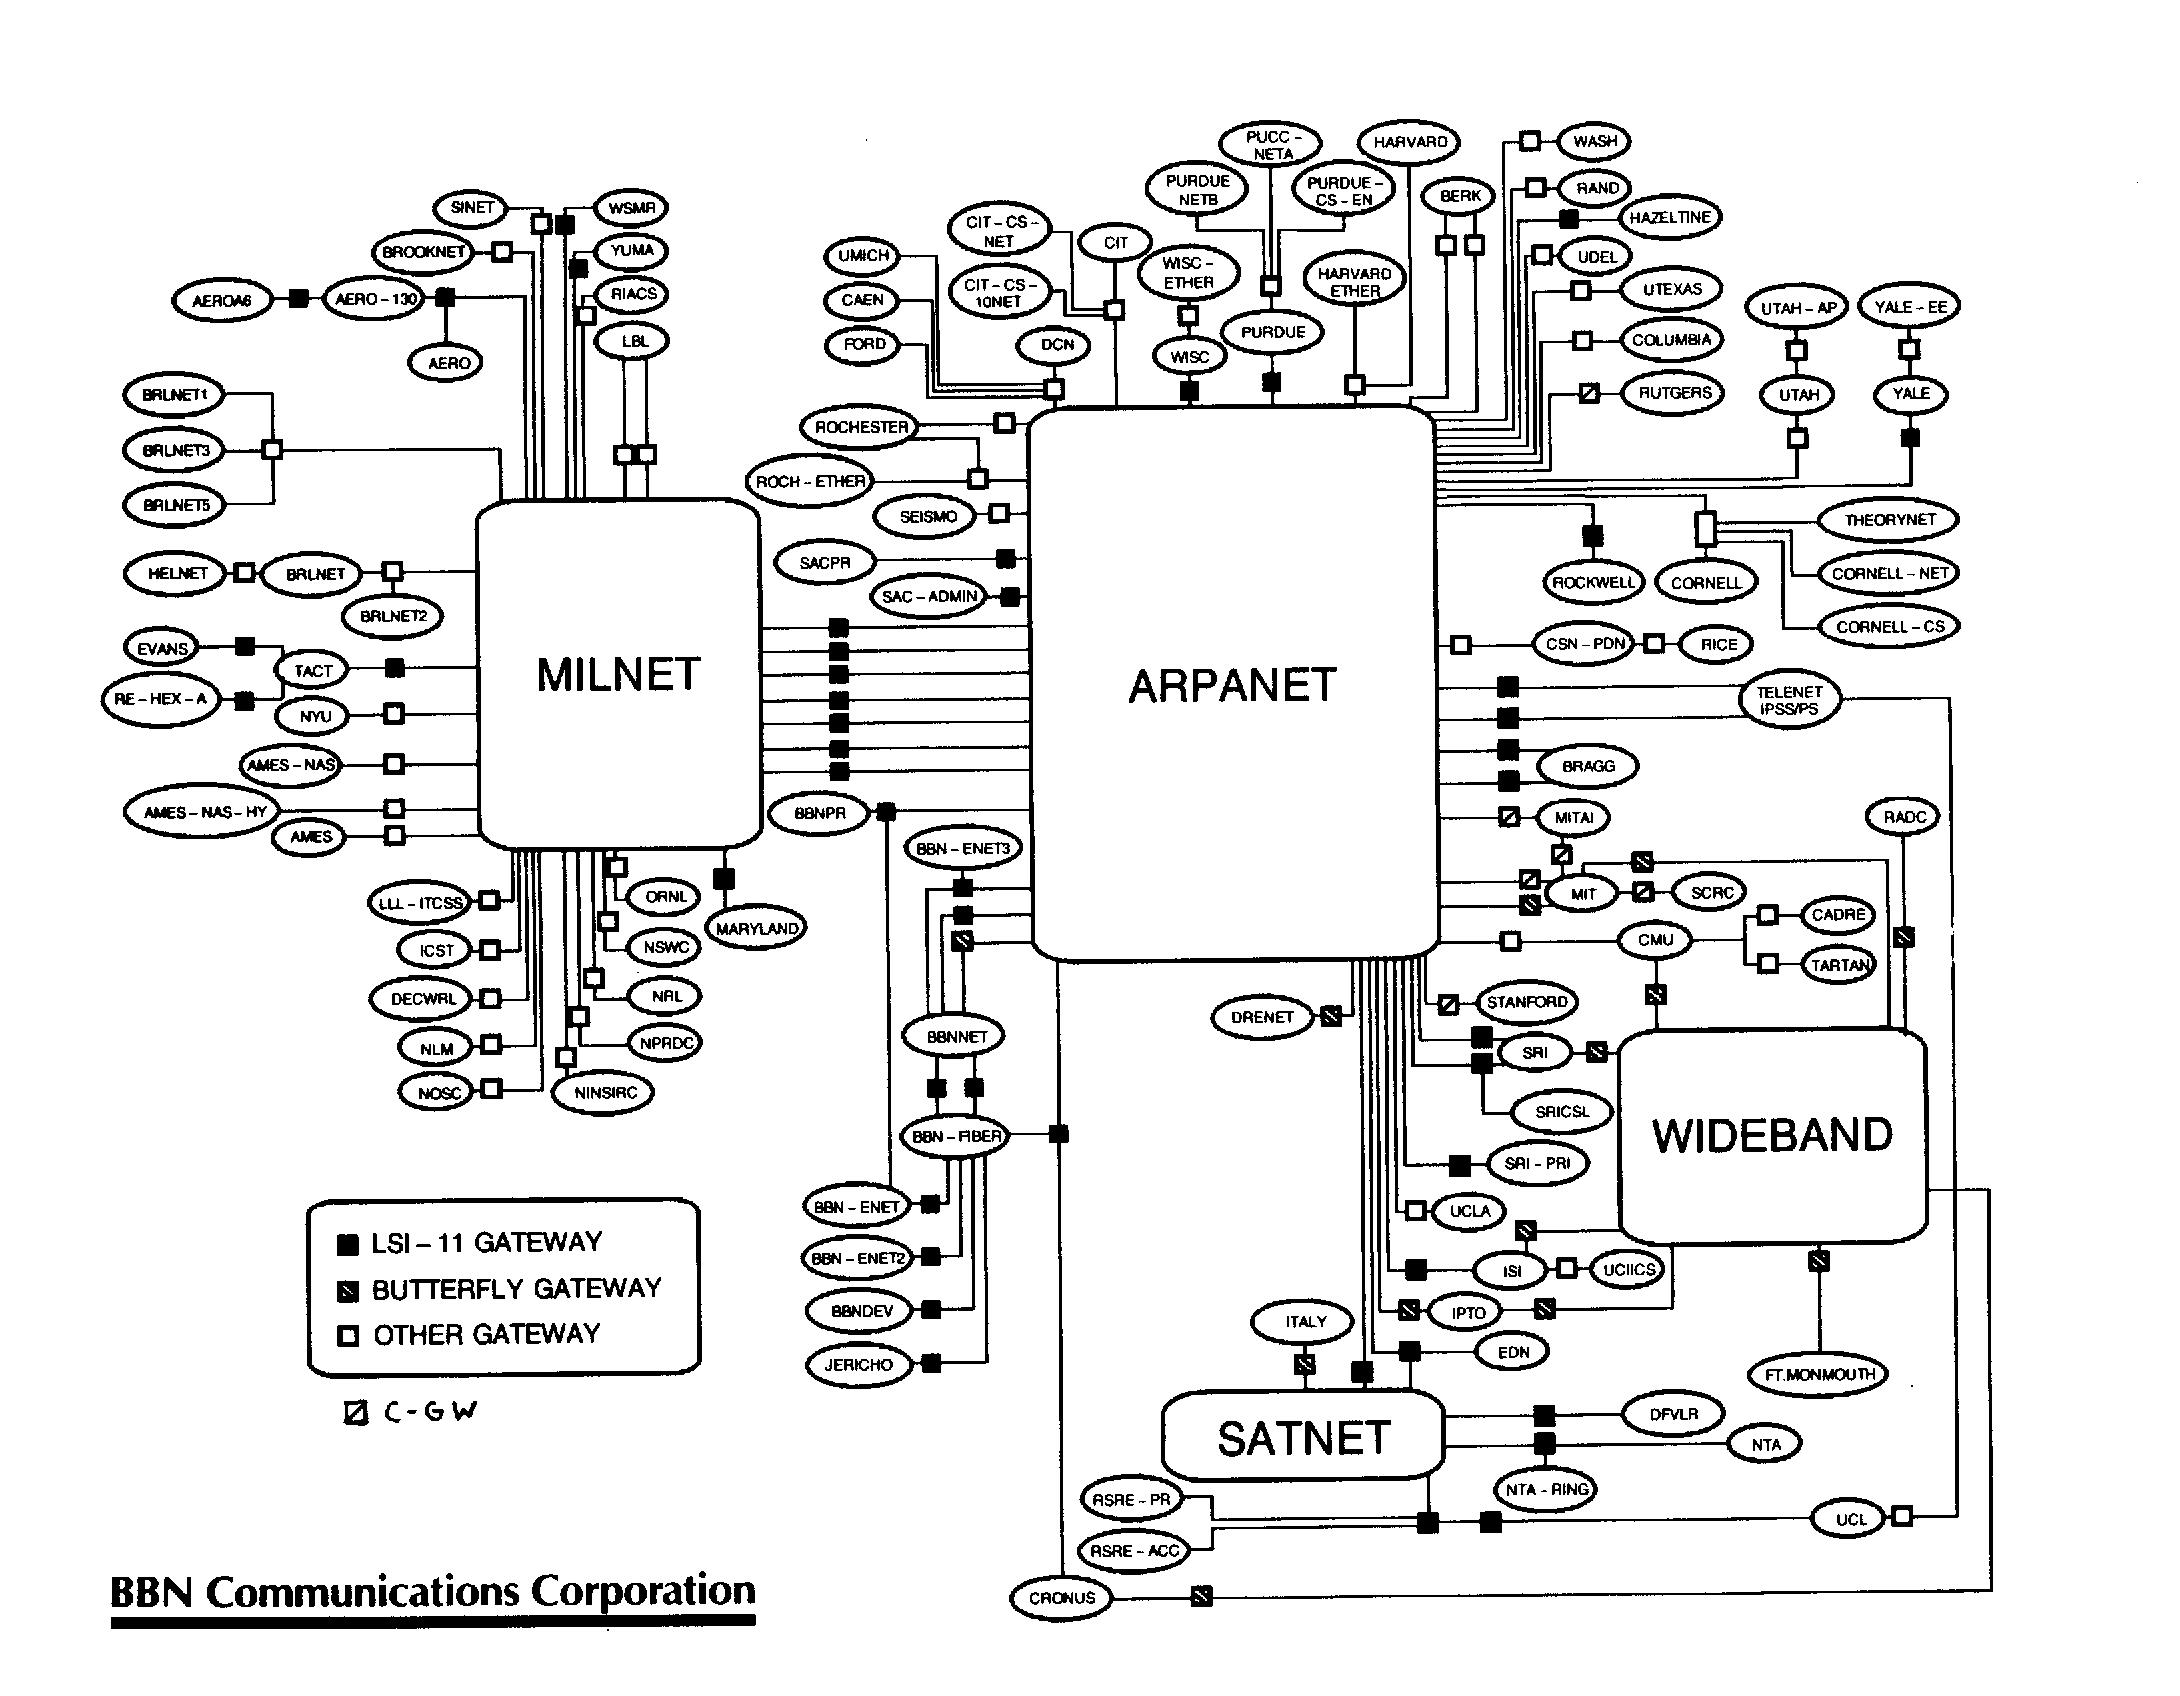 Purchase Department Process Flow Chart: History of the Internet - Wikipedia,Chart